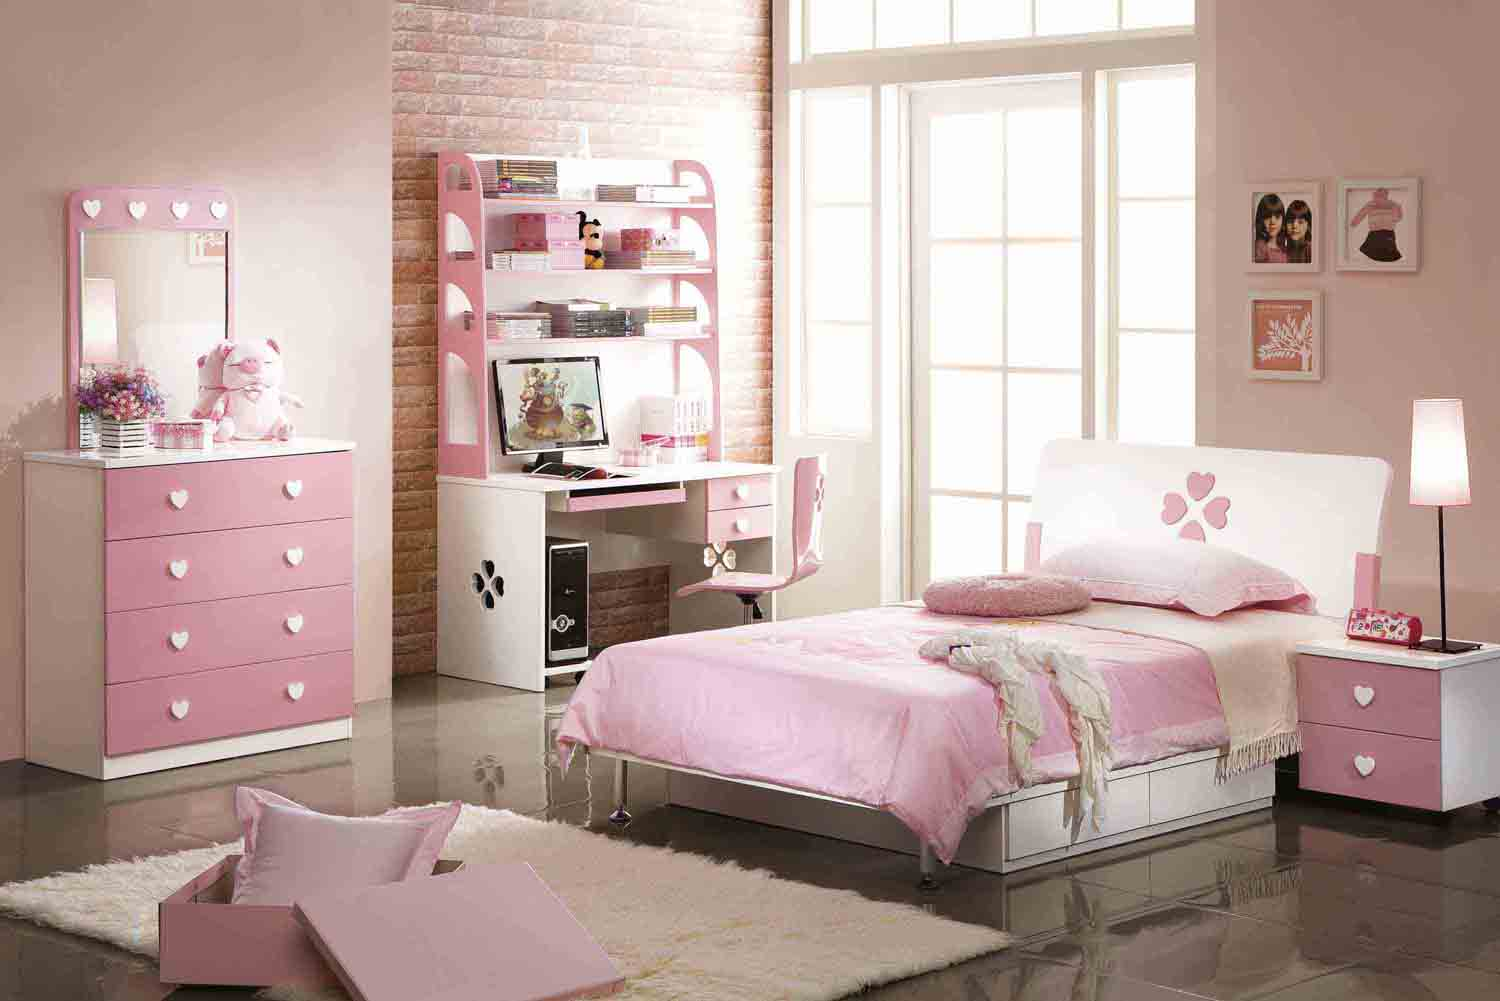 pink-modern-bedroom Grayed Pale Pink color scheme small bedroom decor pictures 1